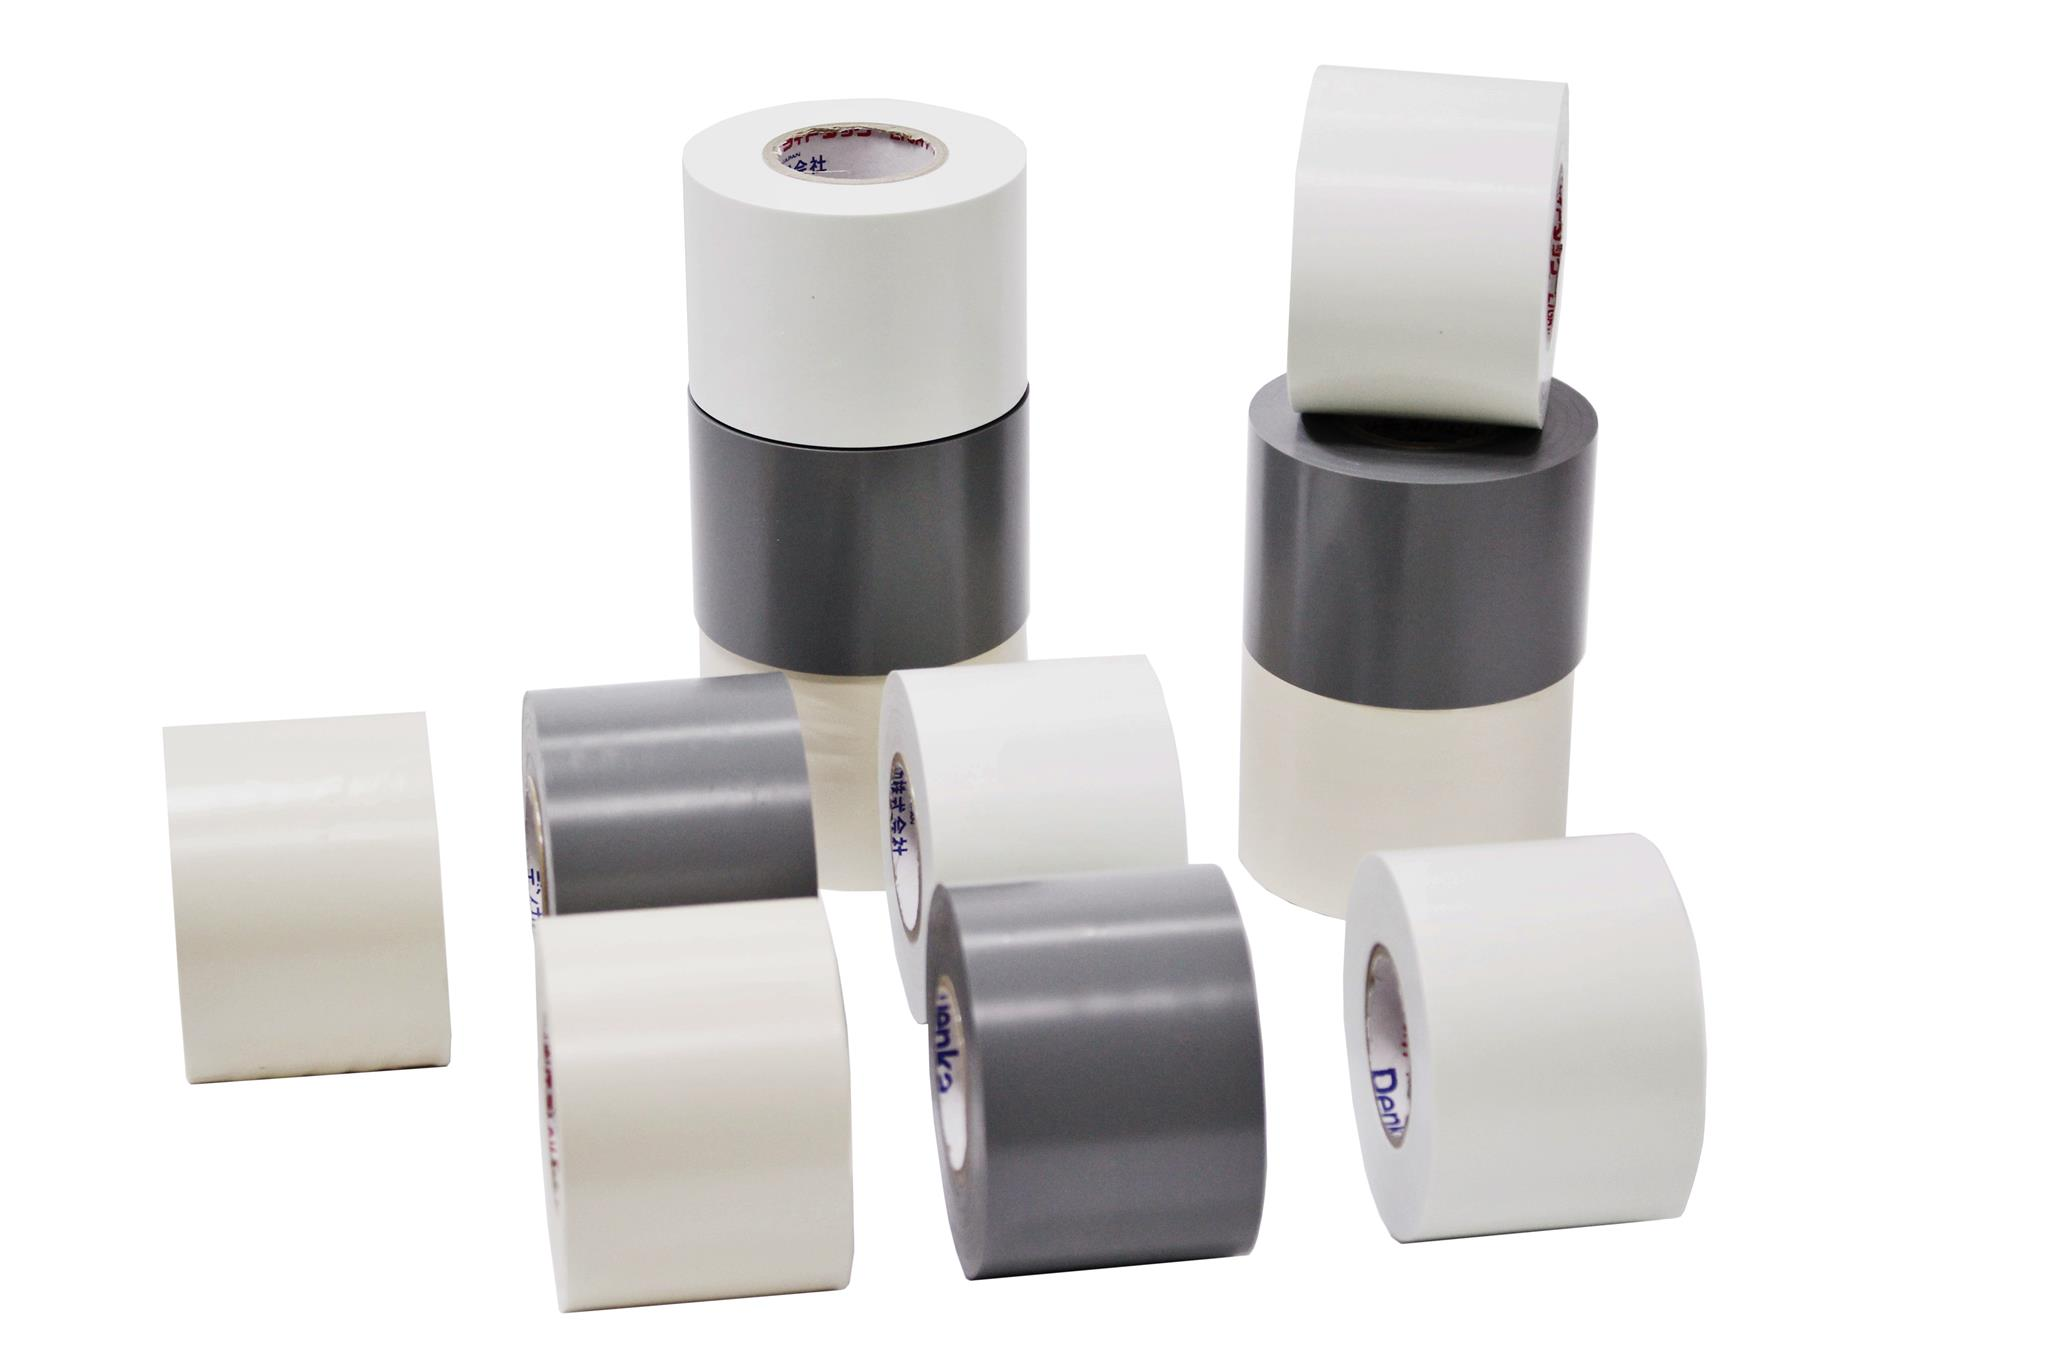 Vinyl tape for air conditioning ducts be not fallen apart (non-adhesive tape)